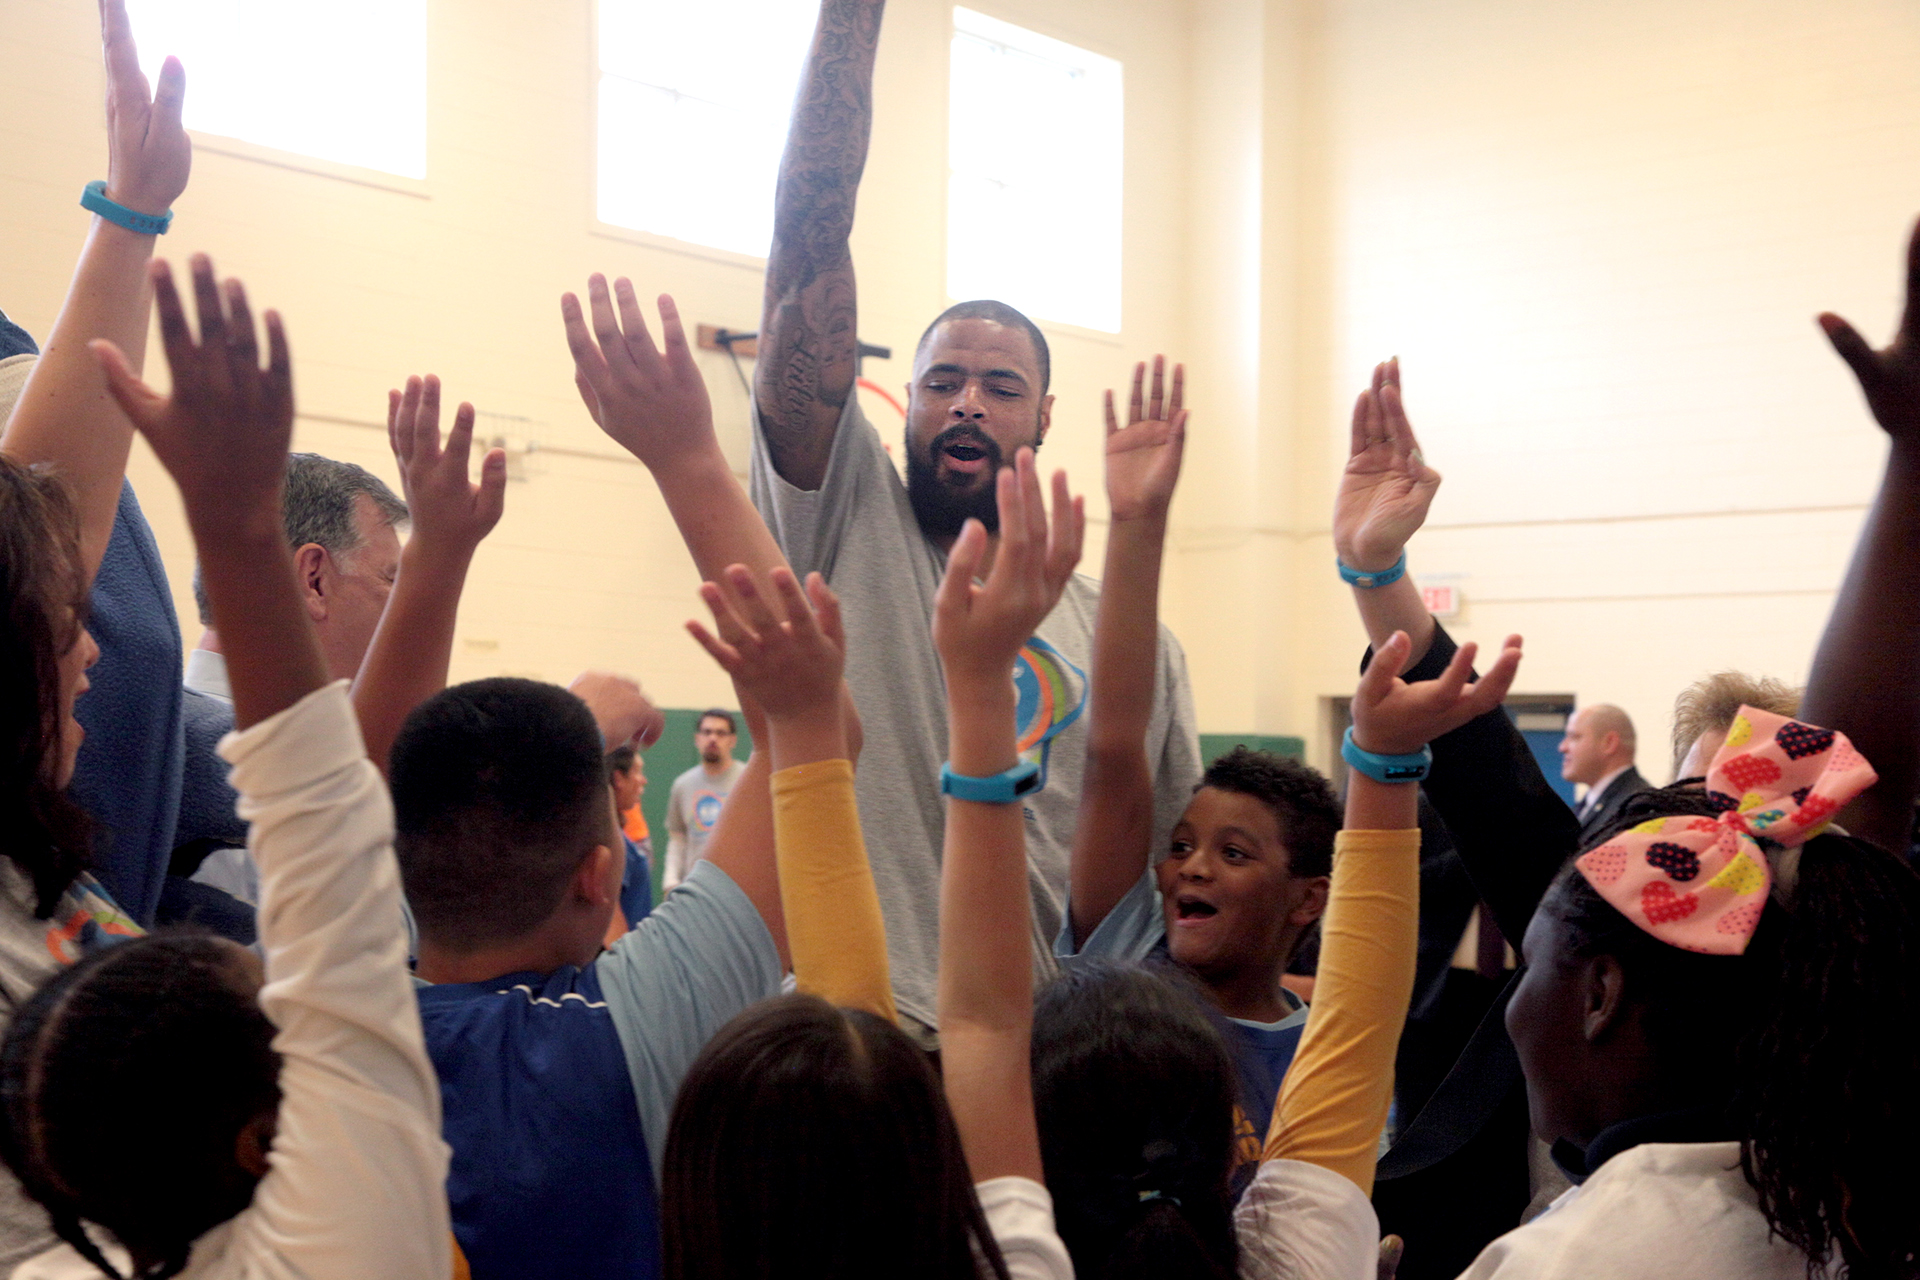 DALLAS, TX - MARCH 30:  Elementary school students getting active with UNICEF Ambassador Tyson Chandler (C) at an event celebrating UNICEF Kid Power at Esperanza Hope Medrano Elementary School on March 30, 2015 in Dallas, Texas.  (Photo by Peter Larsen/Getty Images for UNICEF)